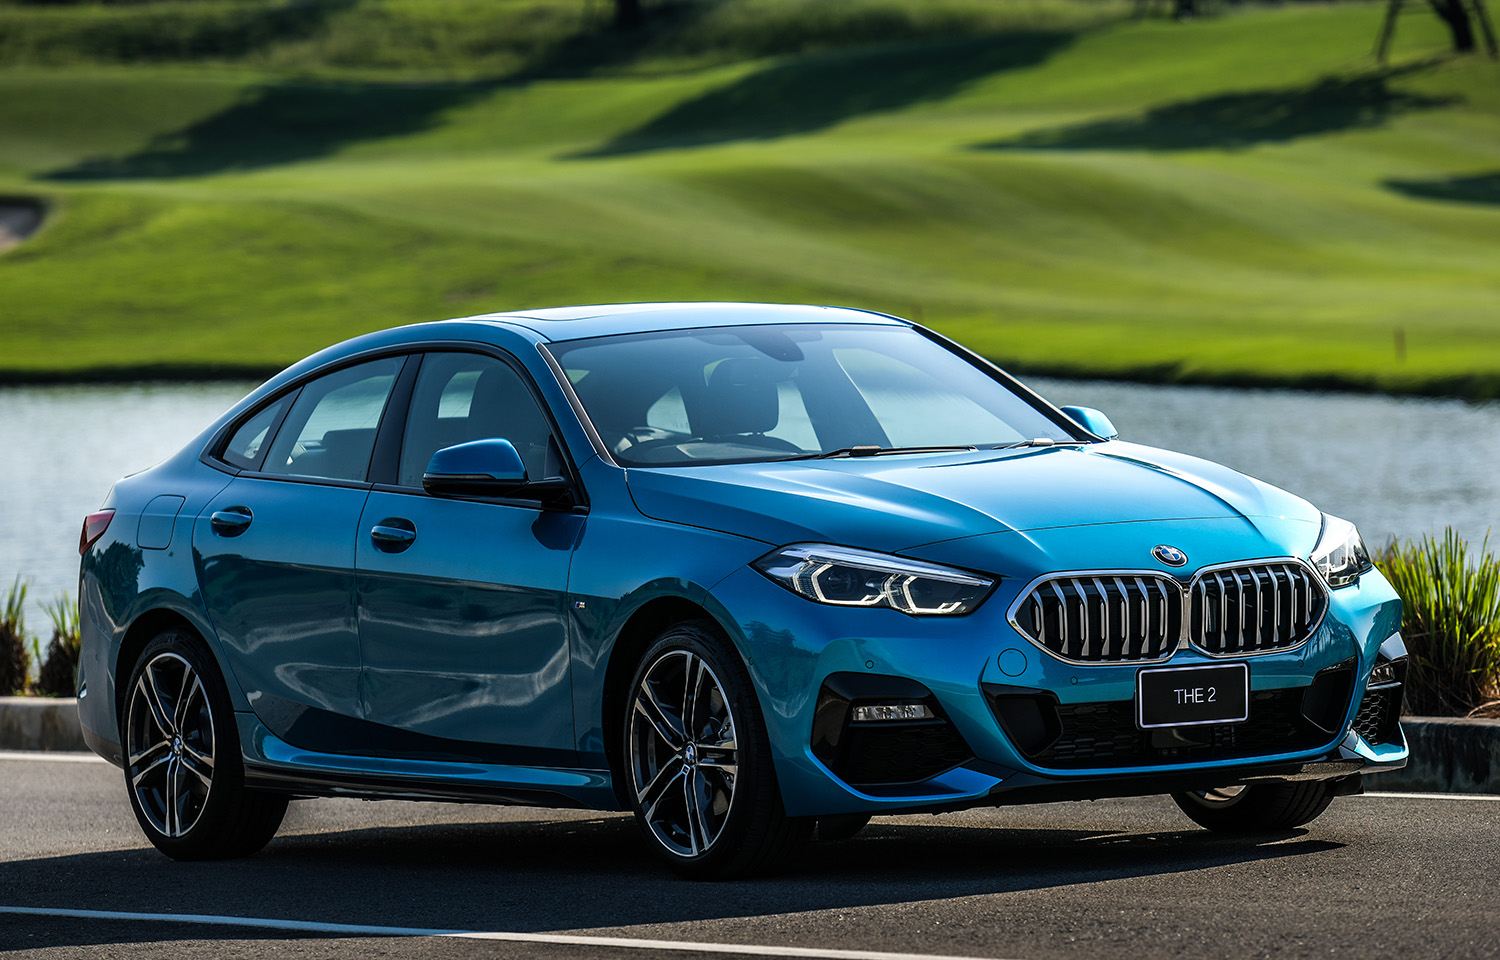 2020 BMW 2 Series Gran Coupe: Thai pricing and specs